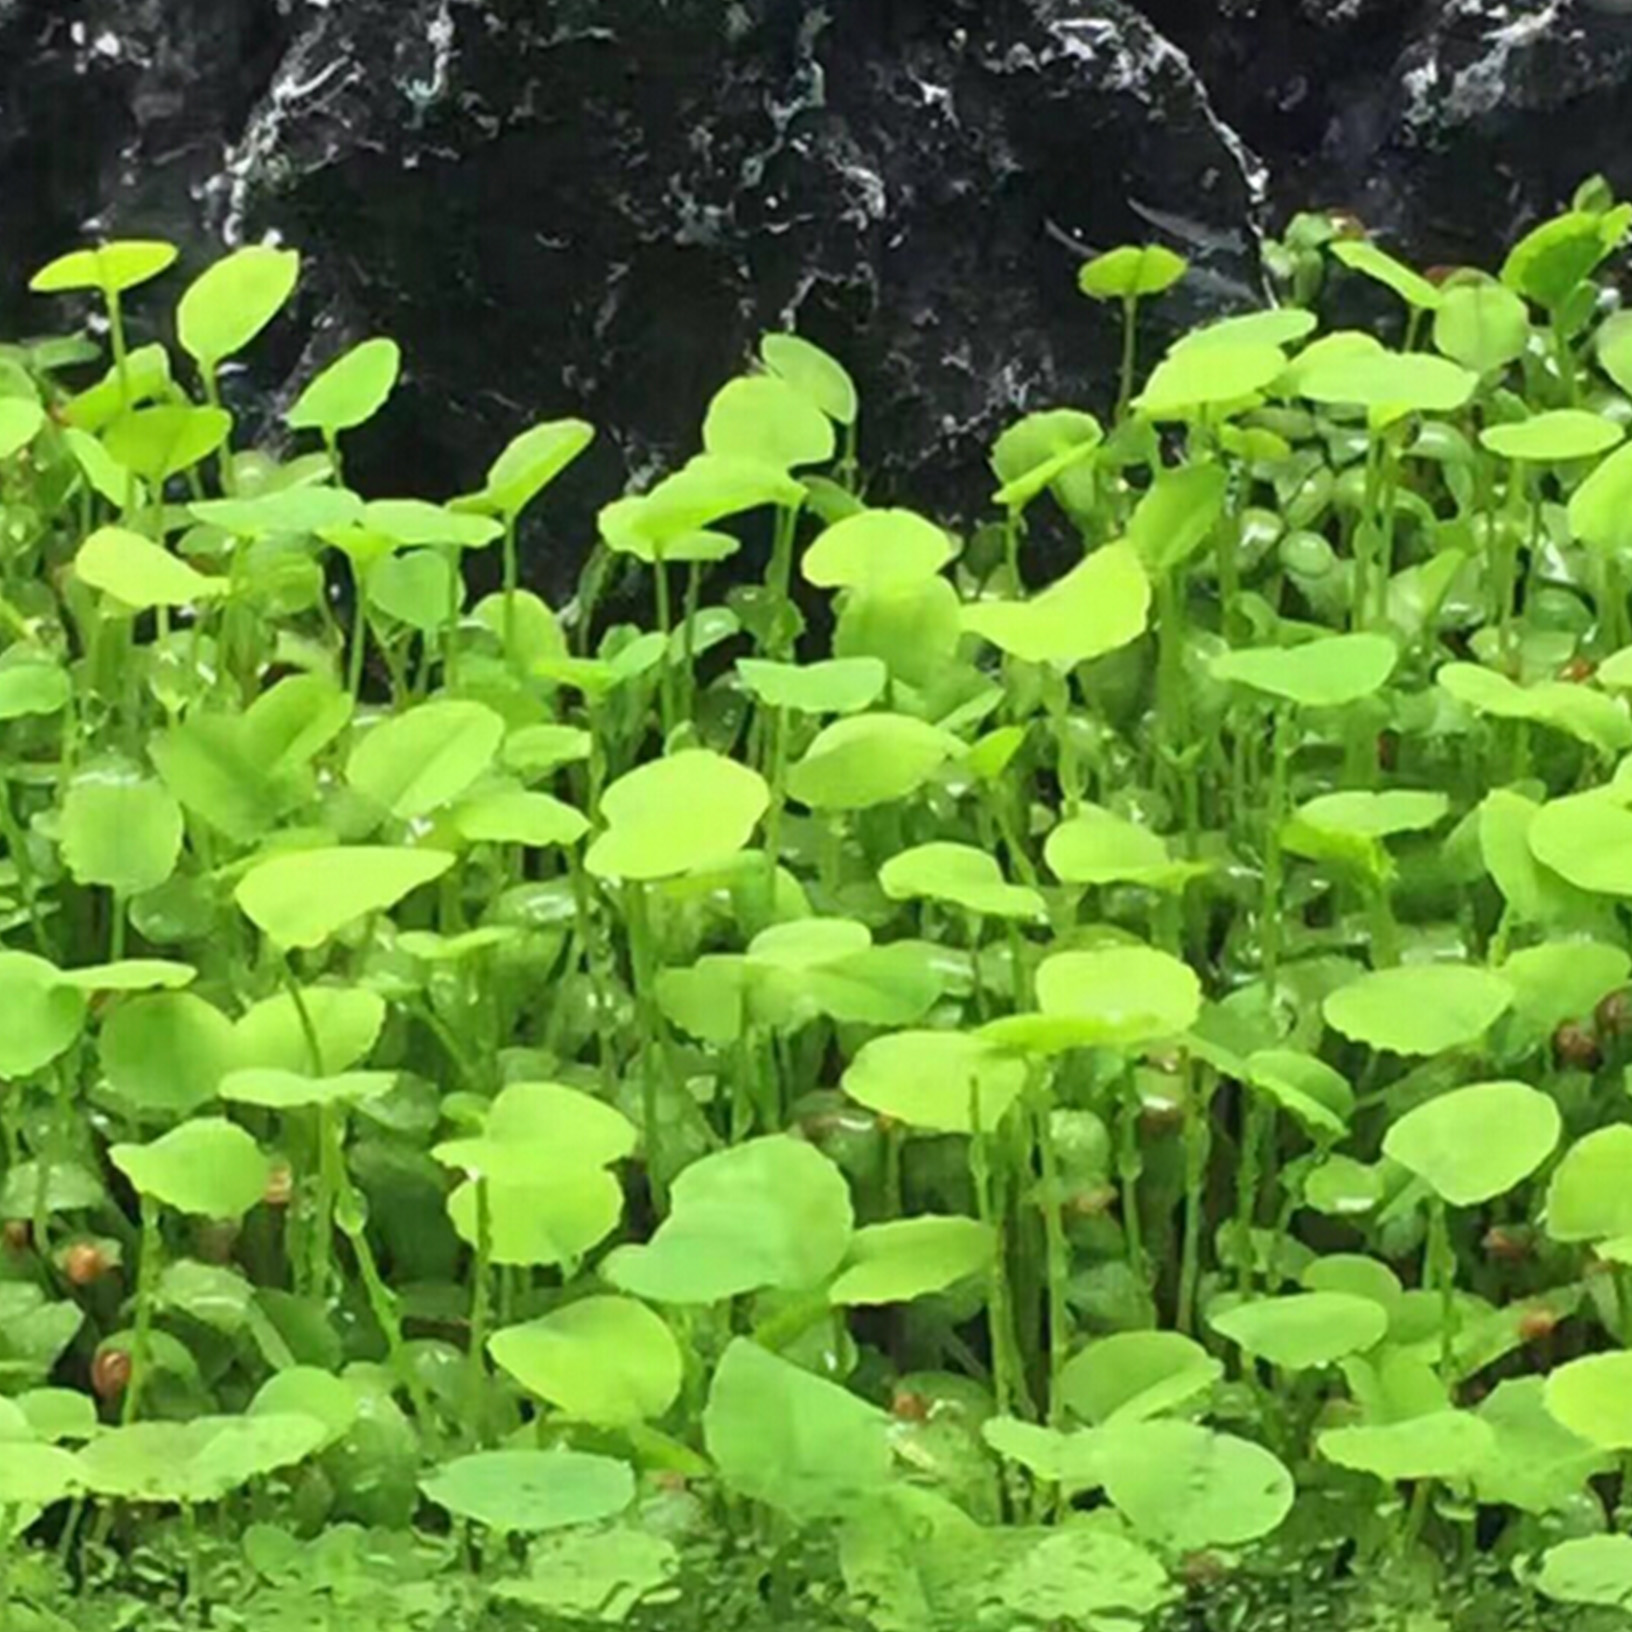 Aquarium plant seeds green grass plants fish tank for Growing plants with fish